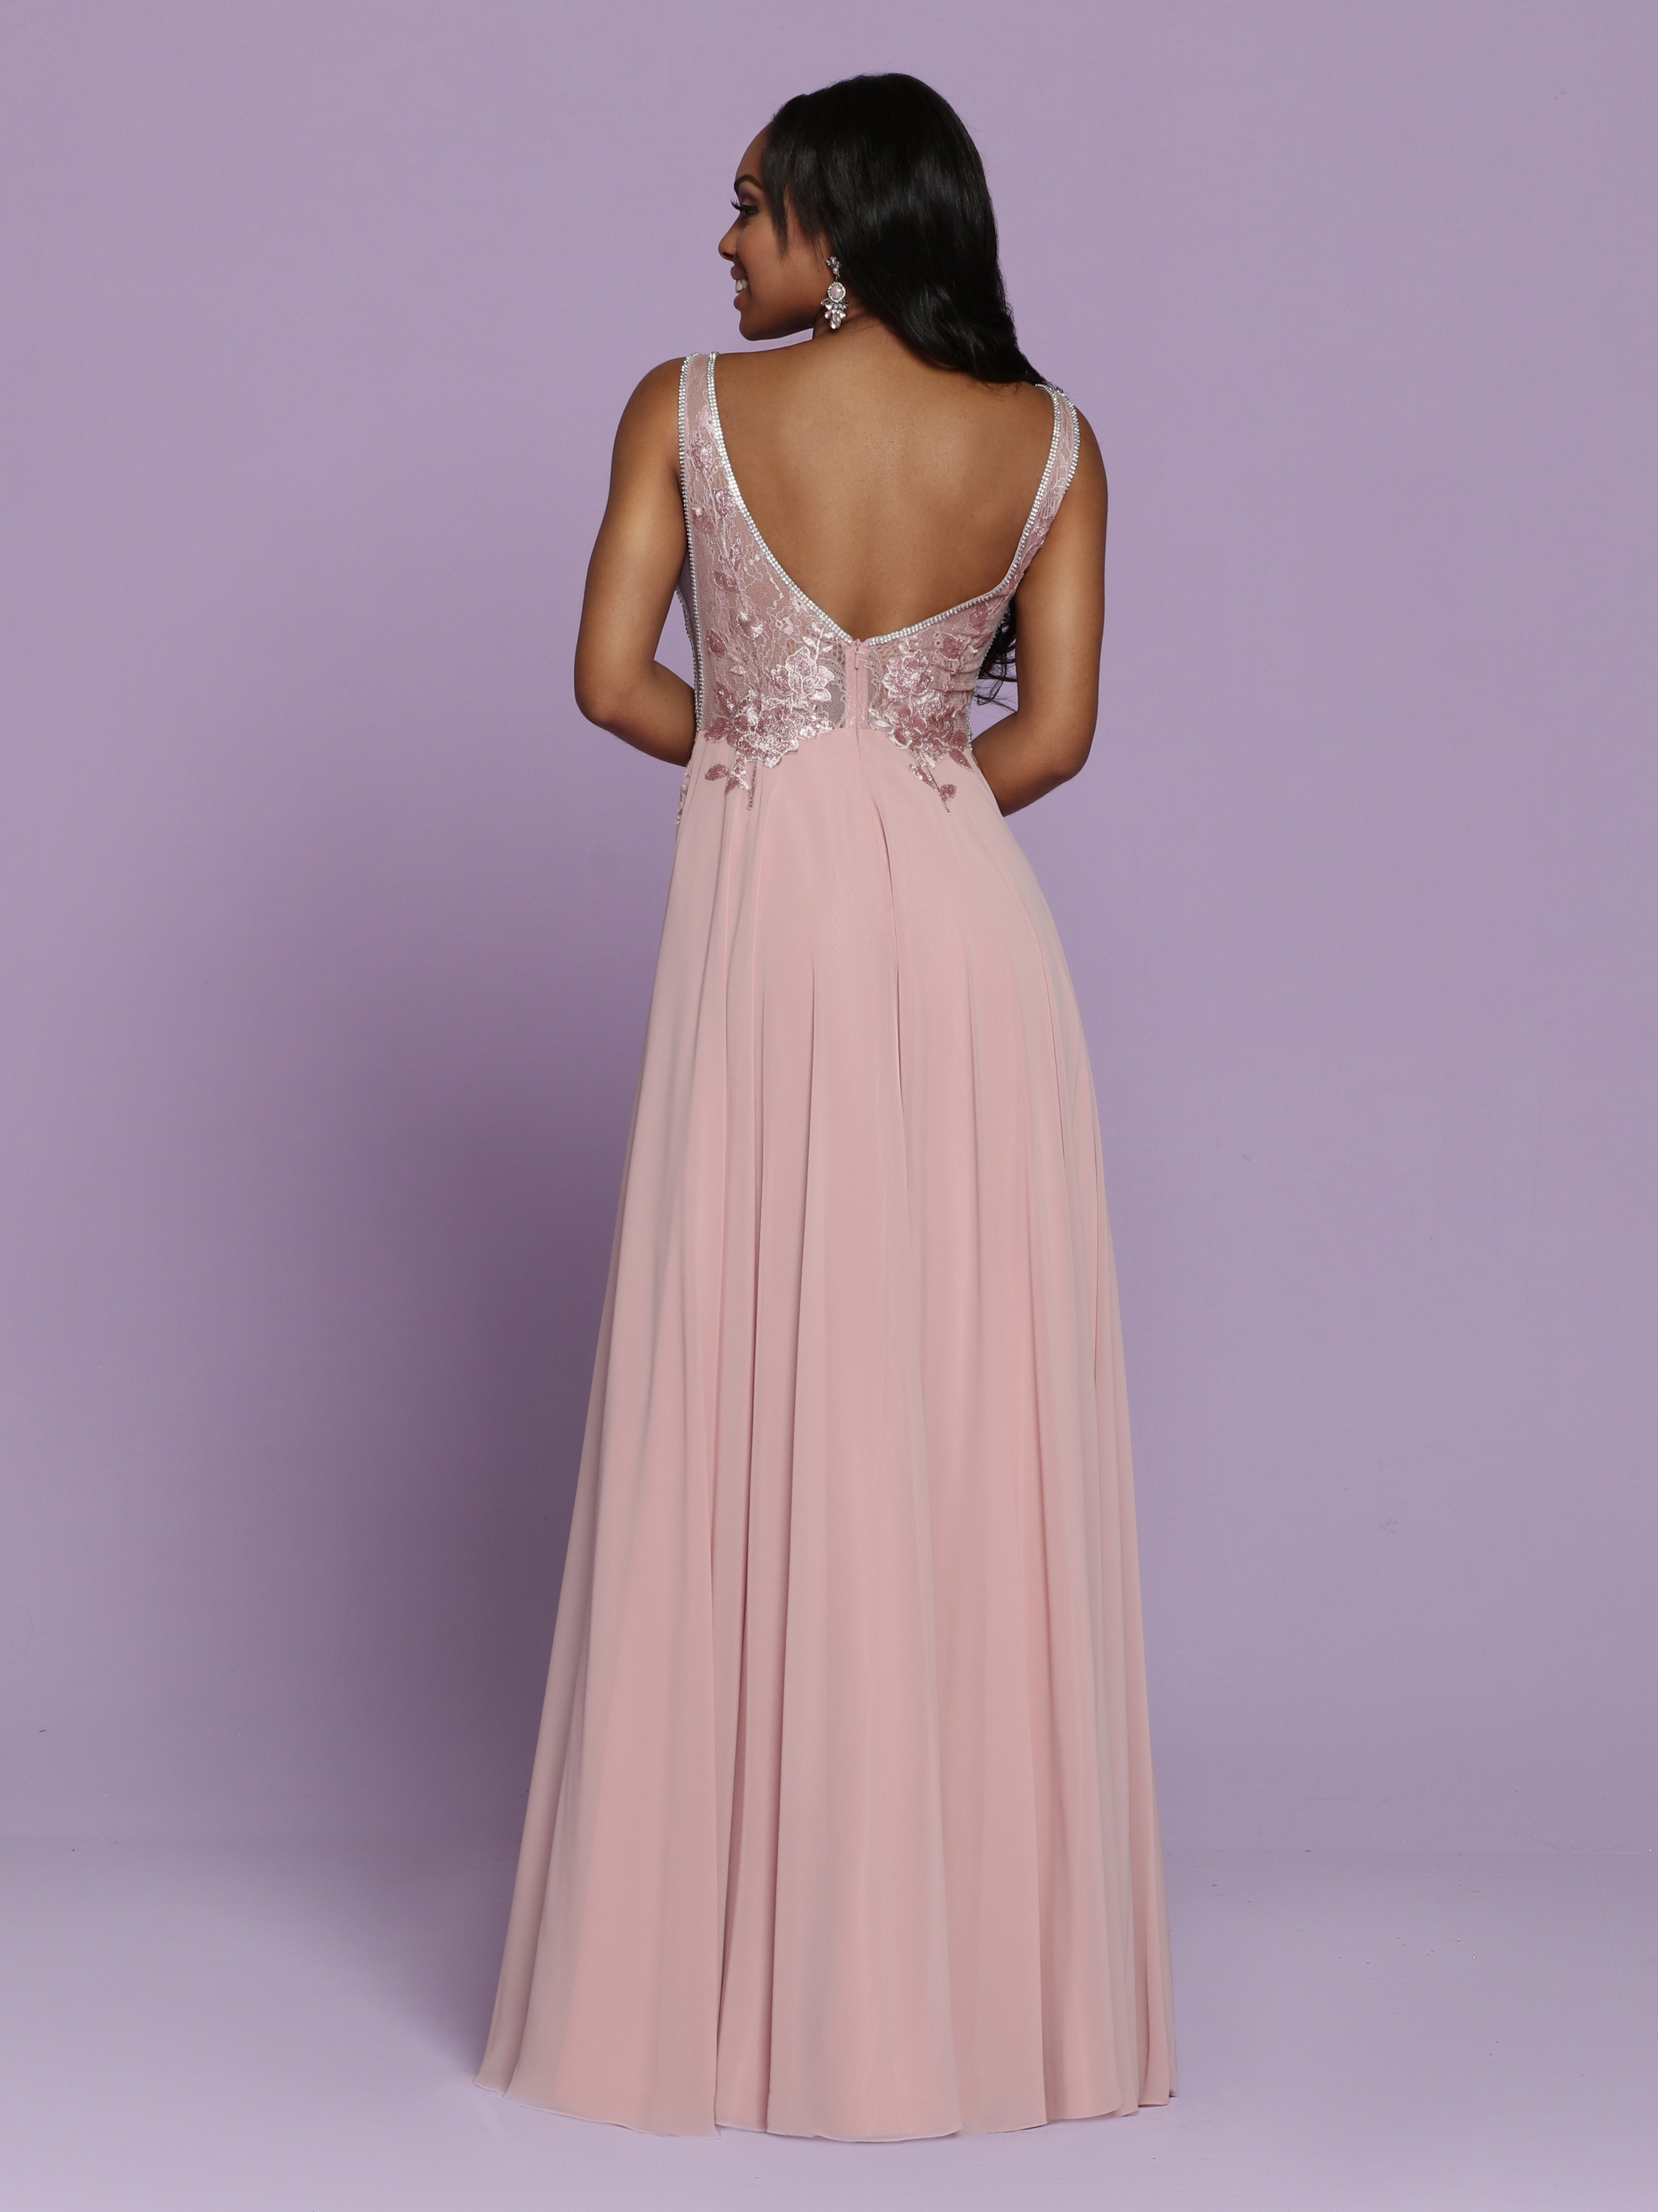 Image showing back view of style #72127